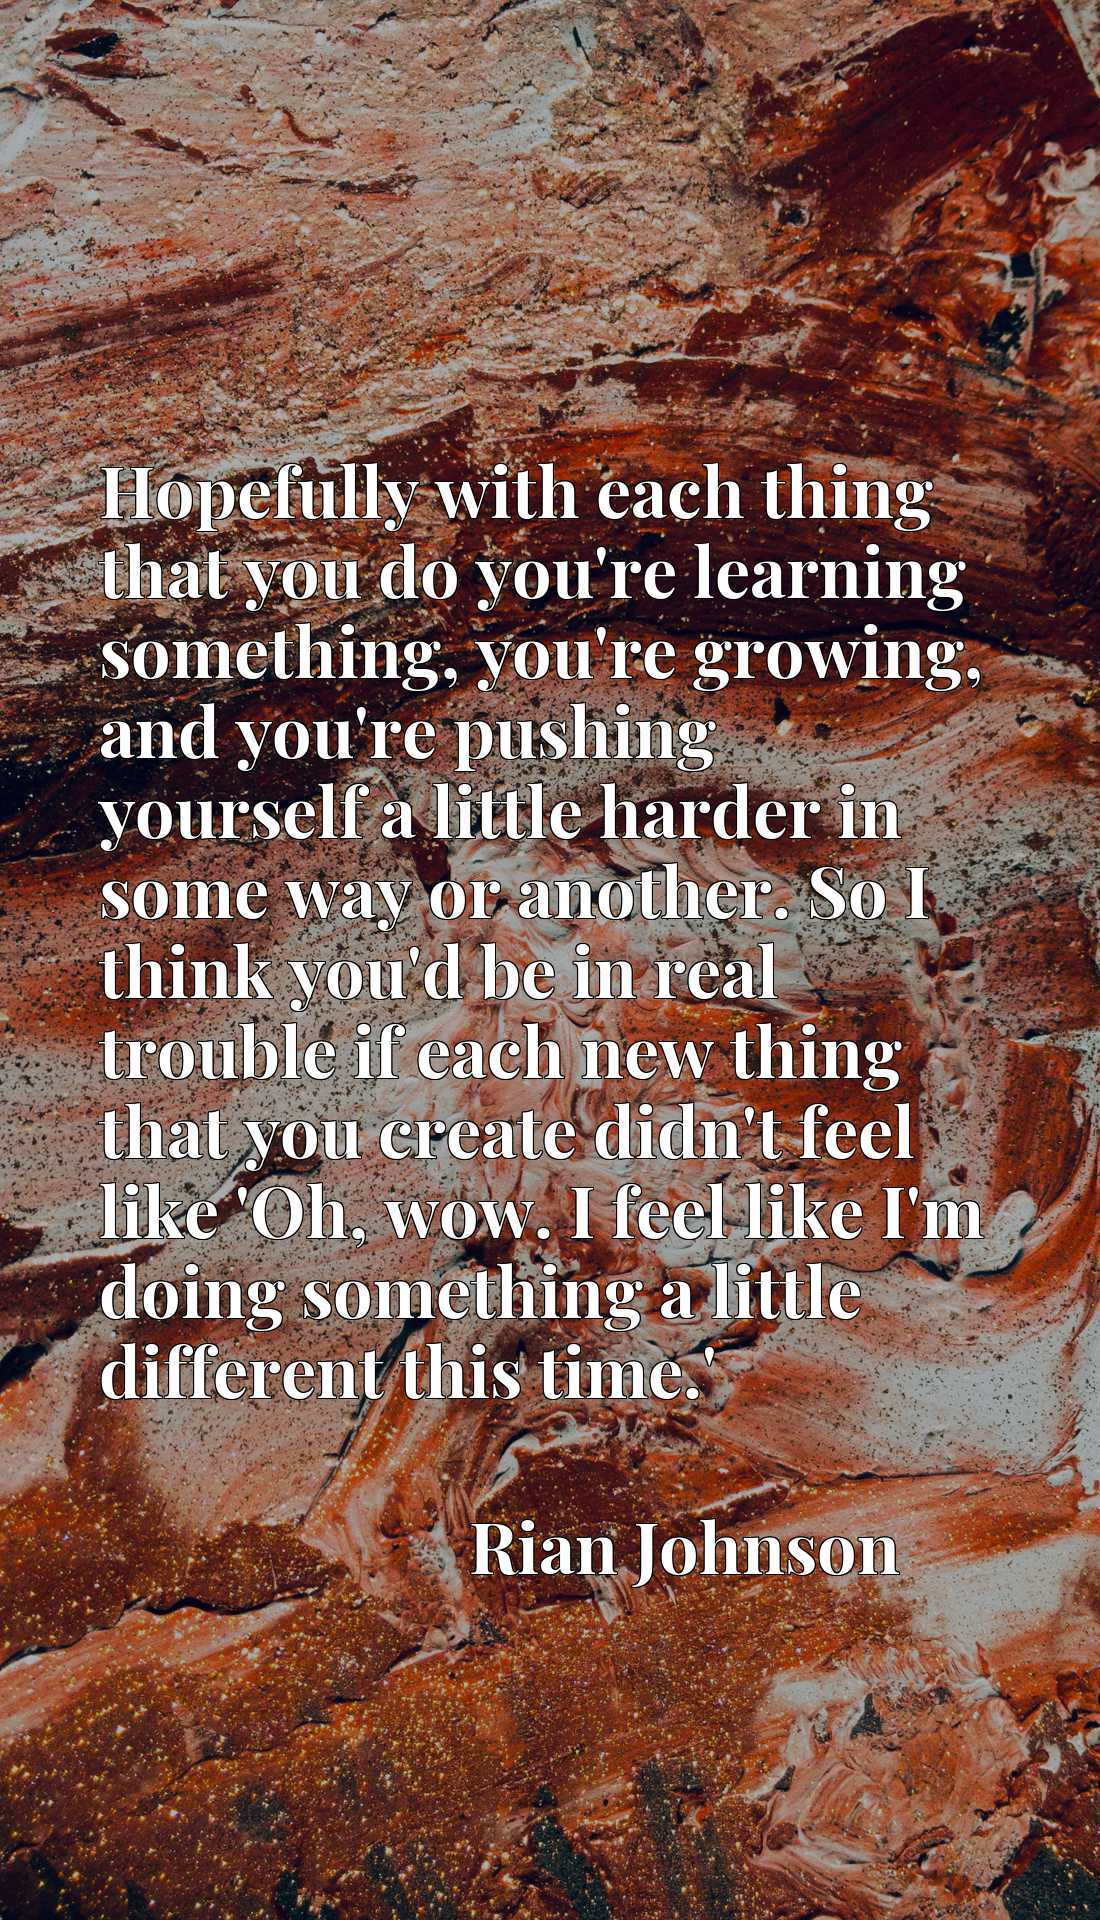 Hopefully with each thing that you do you're learning something, you're growing, and you're pushing yourself a little harder in some way or another. So I think you'd be in real trouble if each new thing that you create didn't feel like 'Oh, wow. I feel like I'm doing something a little different this time.'